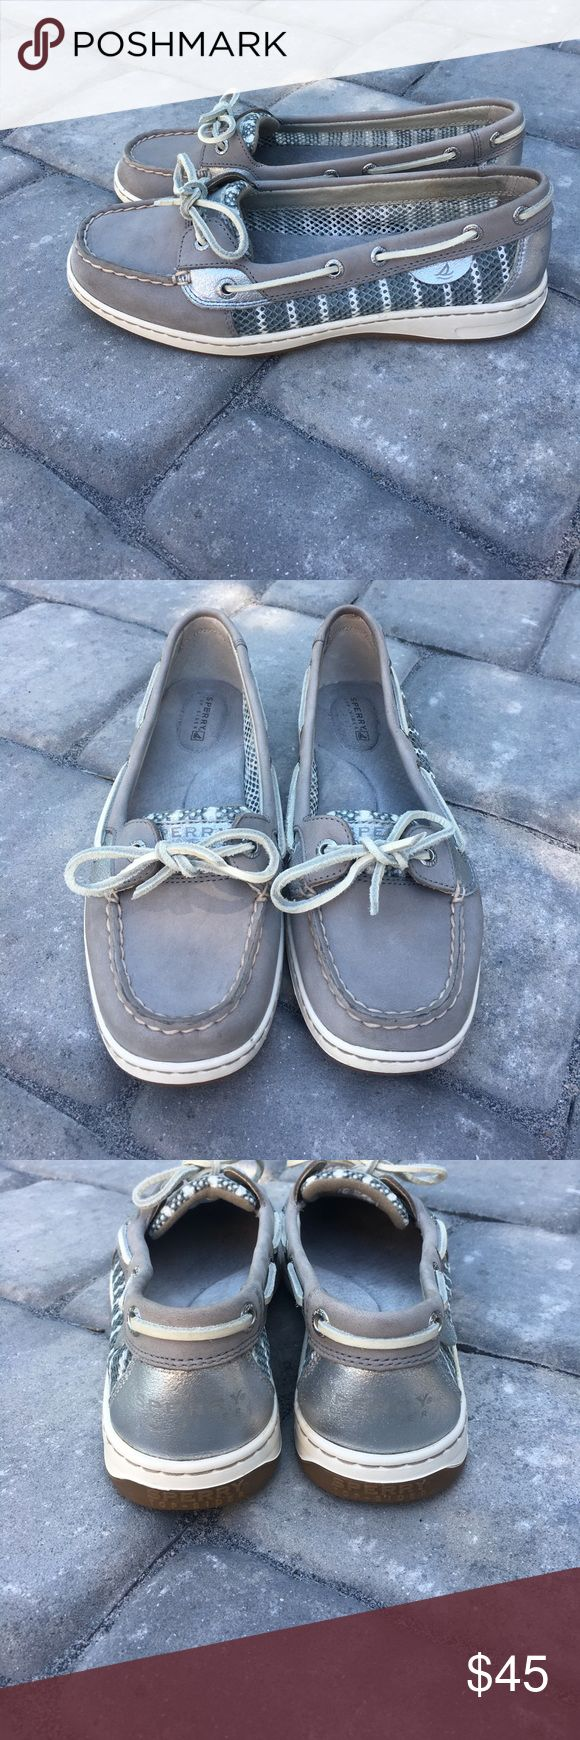 Women's SPERRY gray, silver &white mesh Top Siders Women's SPERRY gray, silver &white mesh Top Siders. Gray and white mesh sides. Silver accents and hardware near laces. Barely used. Maybe worn once. EUC!! Super comfortable just too big for me. Sperry Top-Sider Shoes